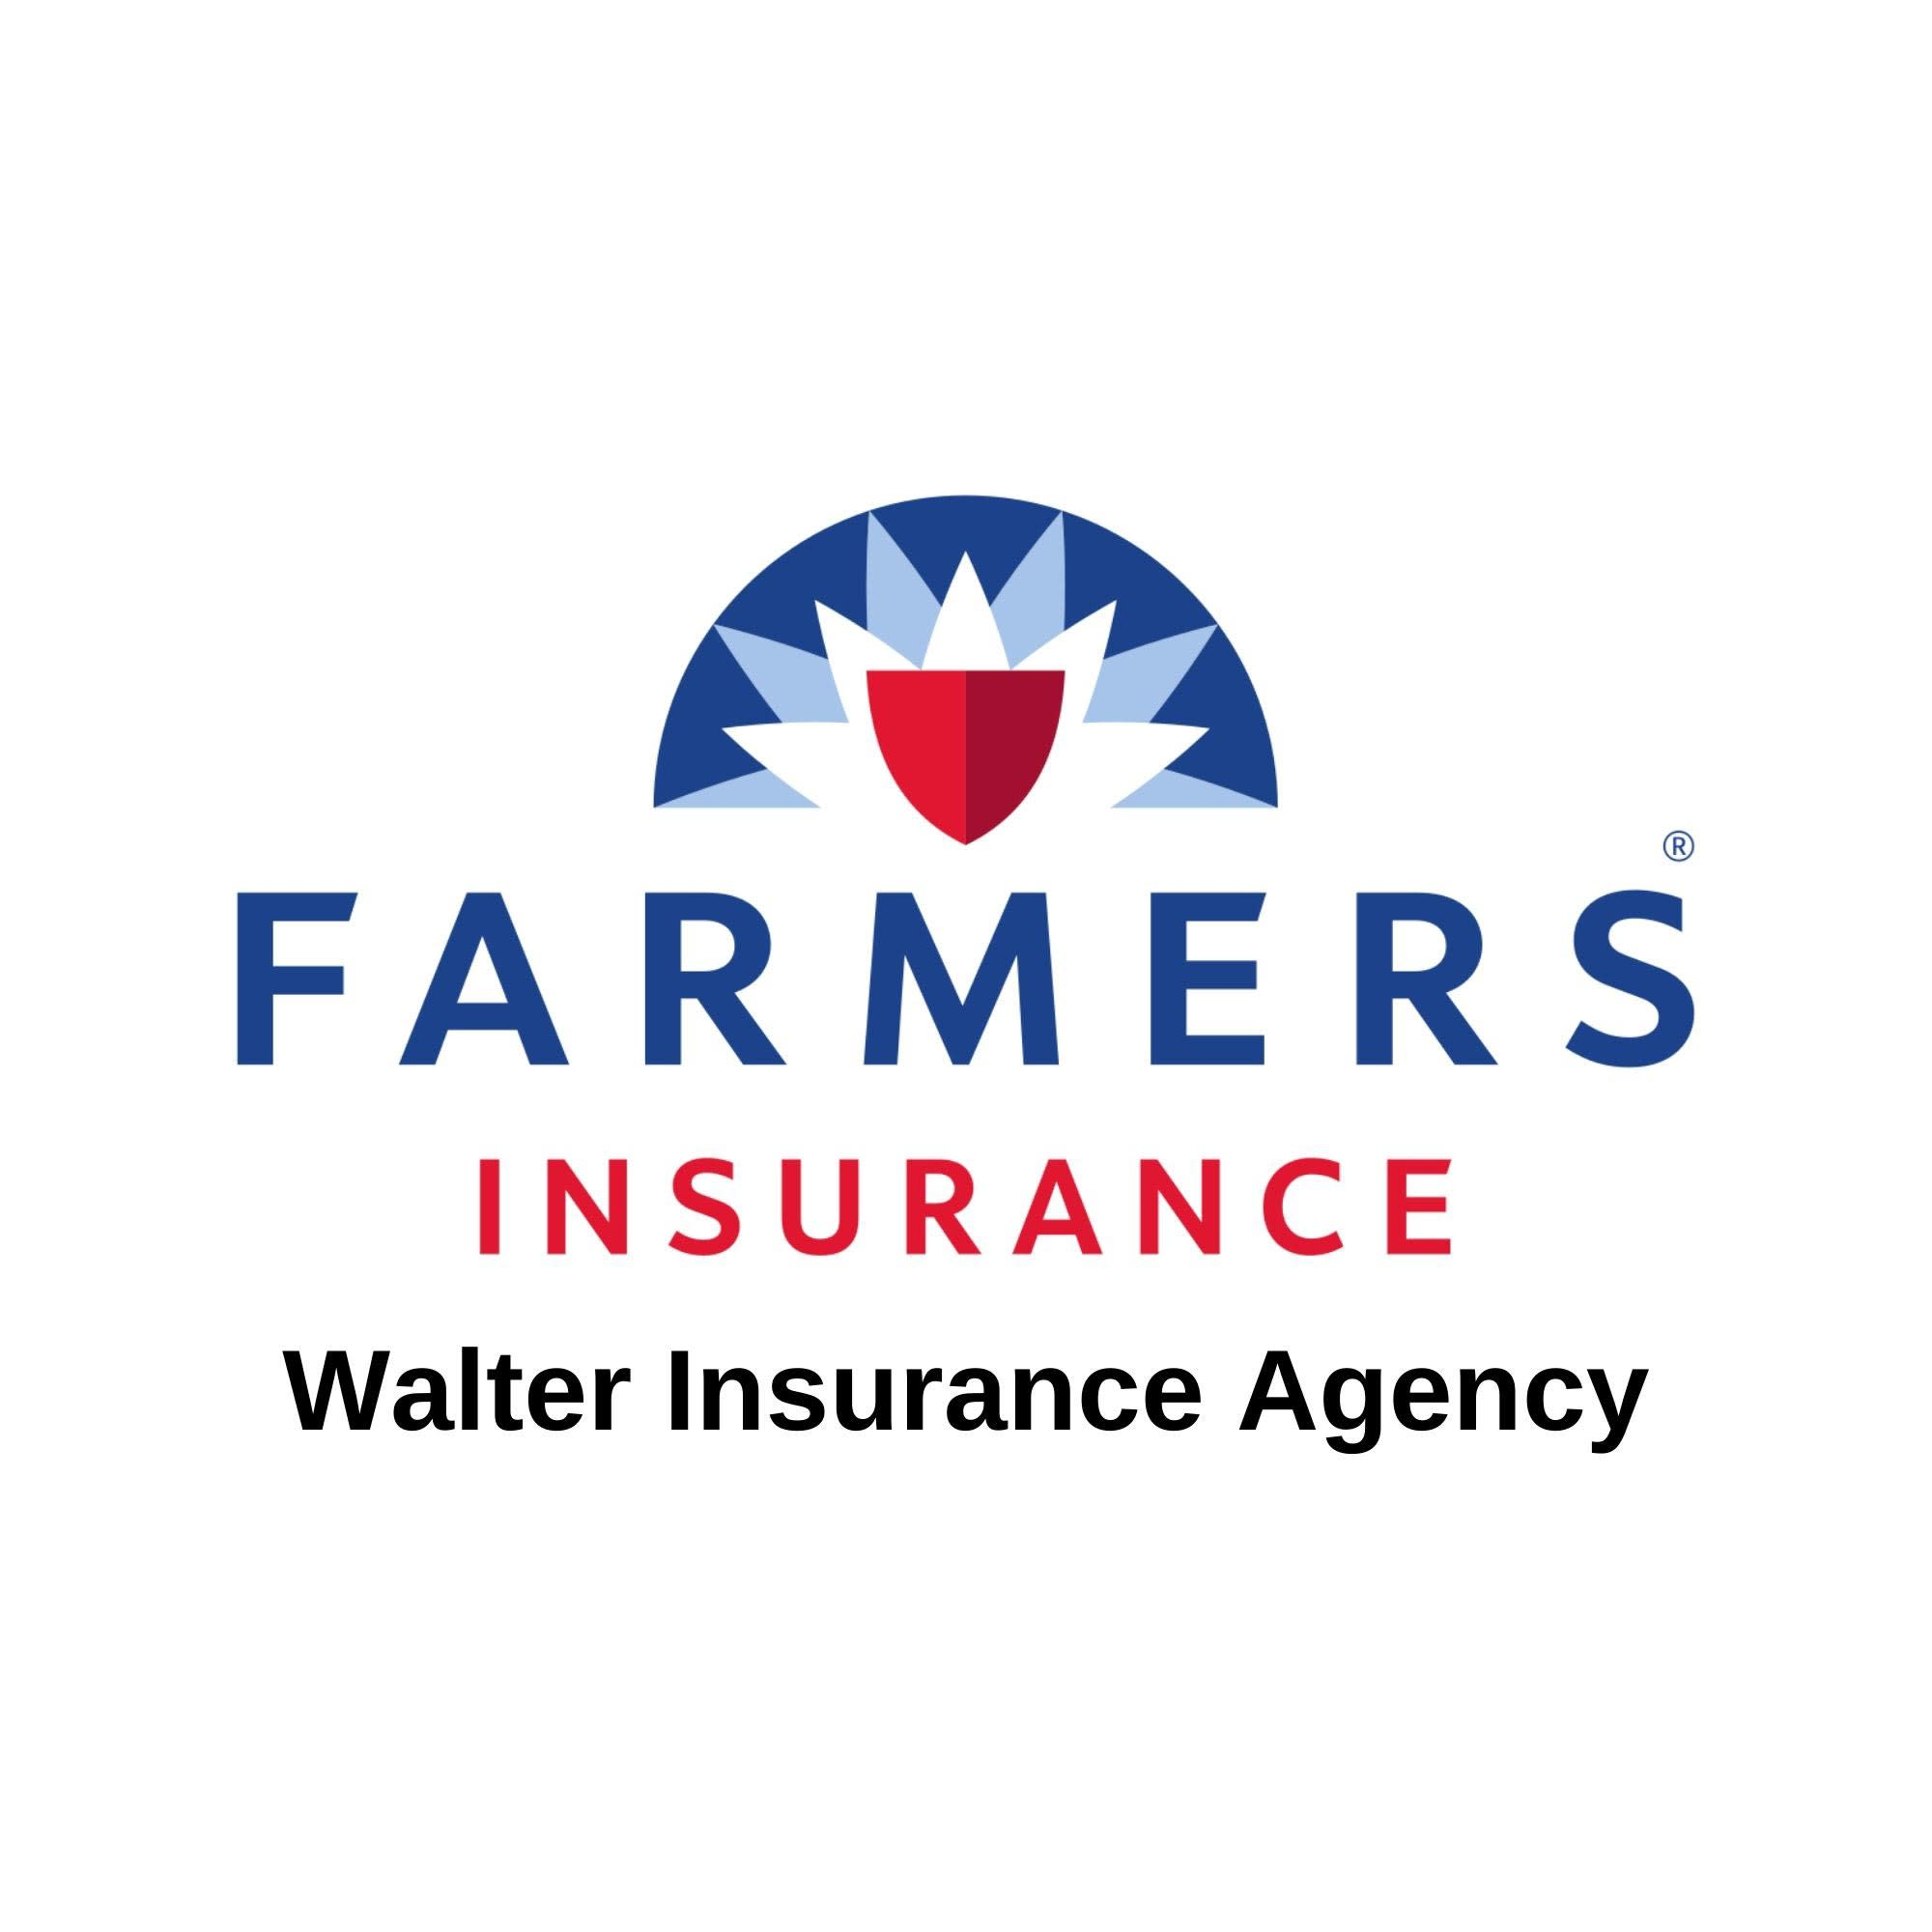 A graphic for Walter Insurance Agency, affiliated with Farmers Insurance.